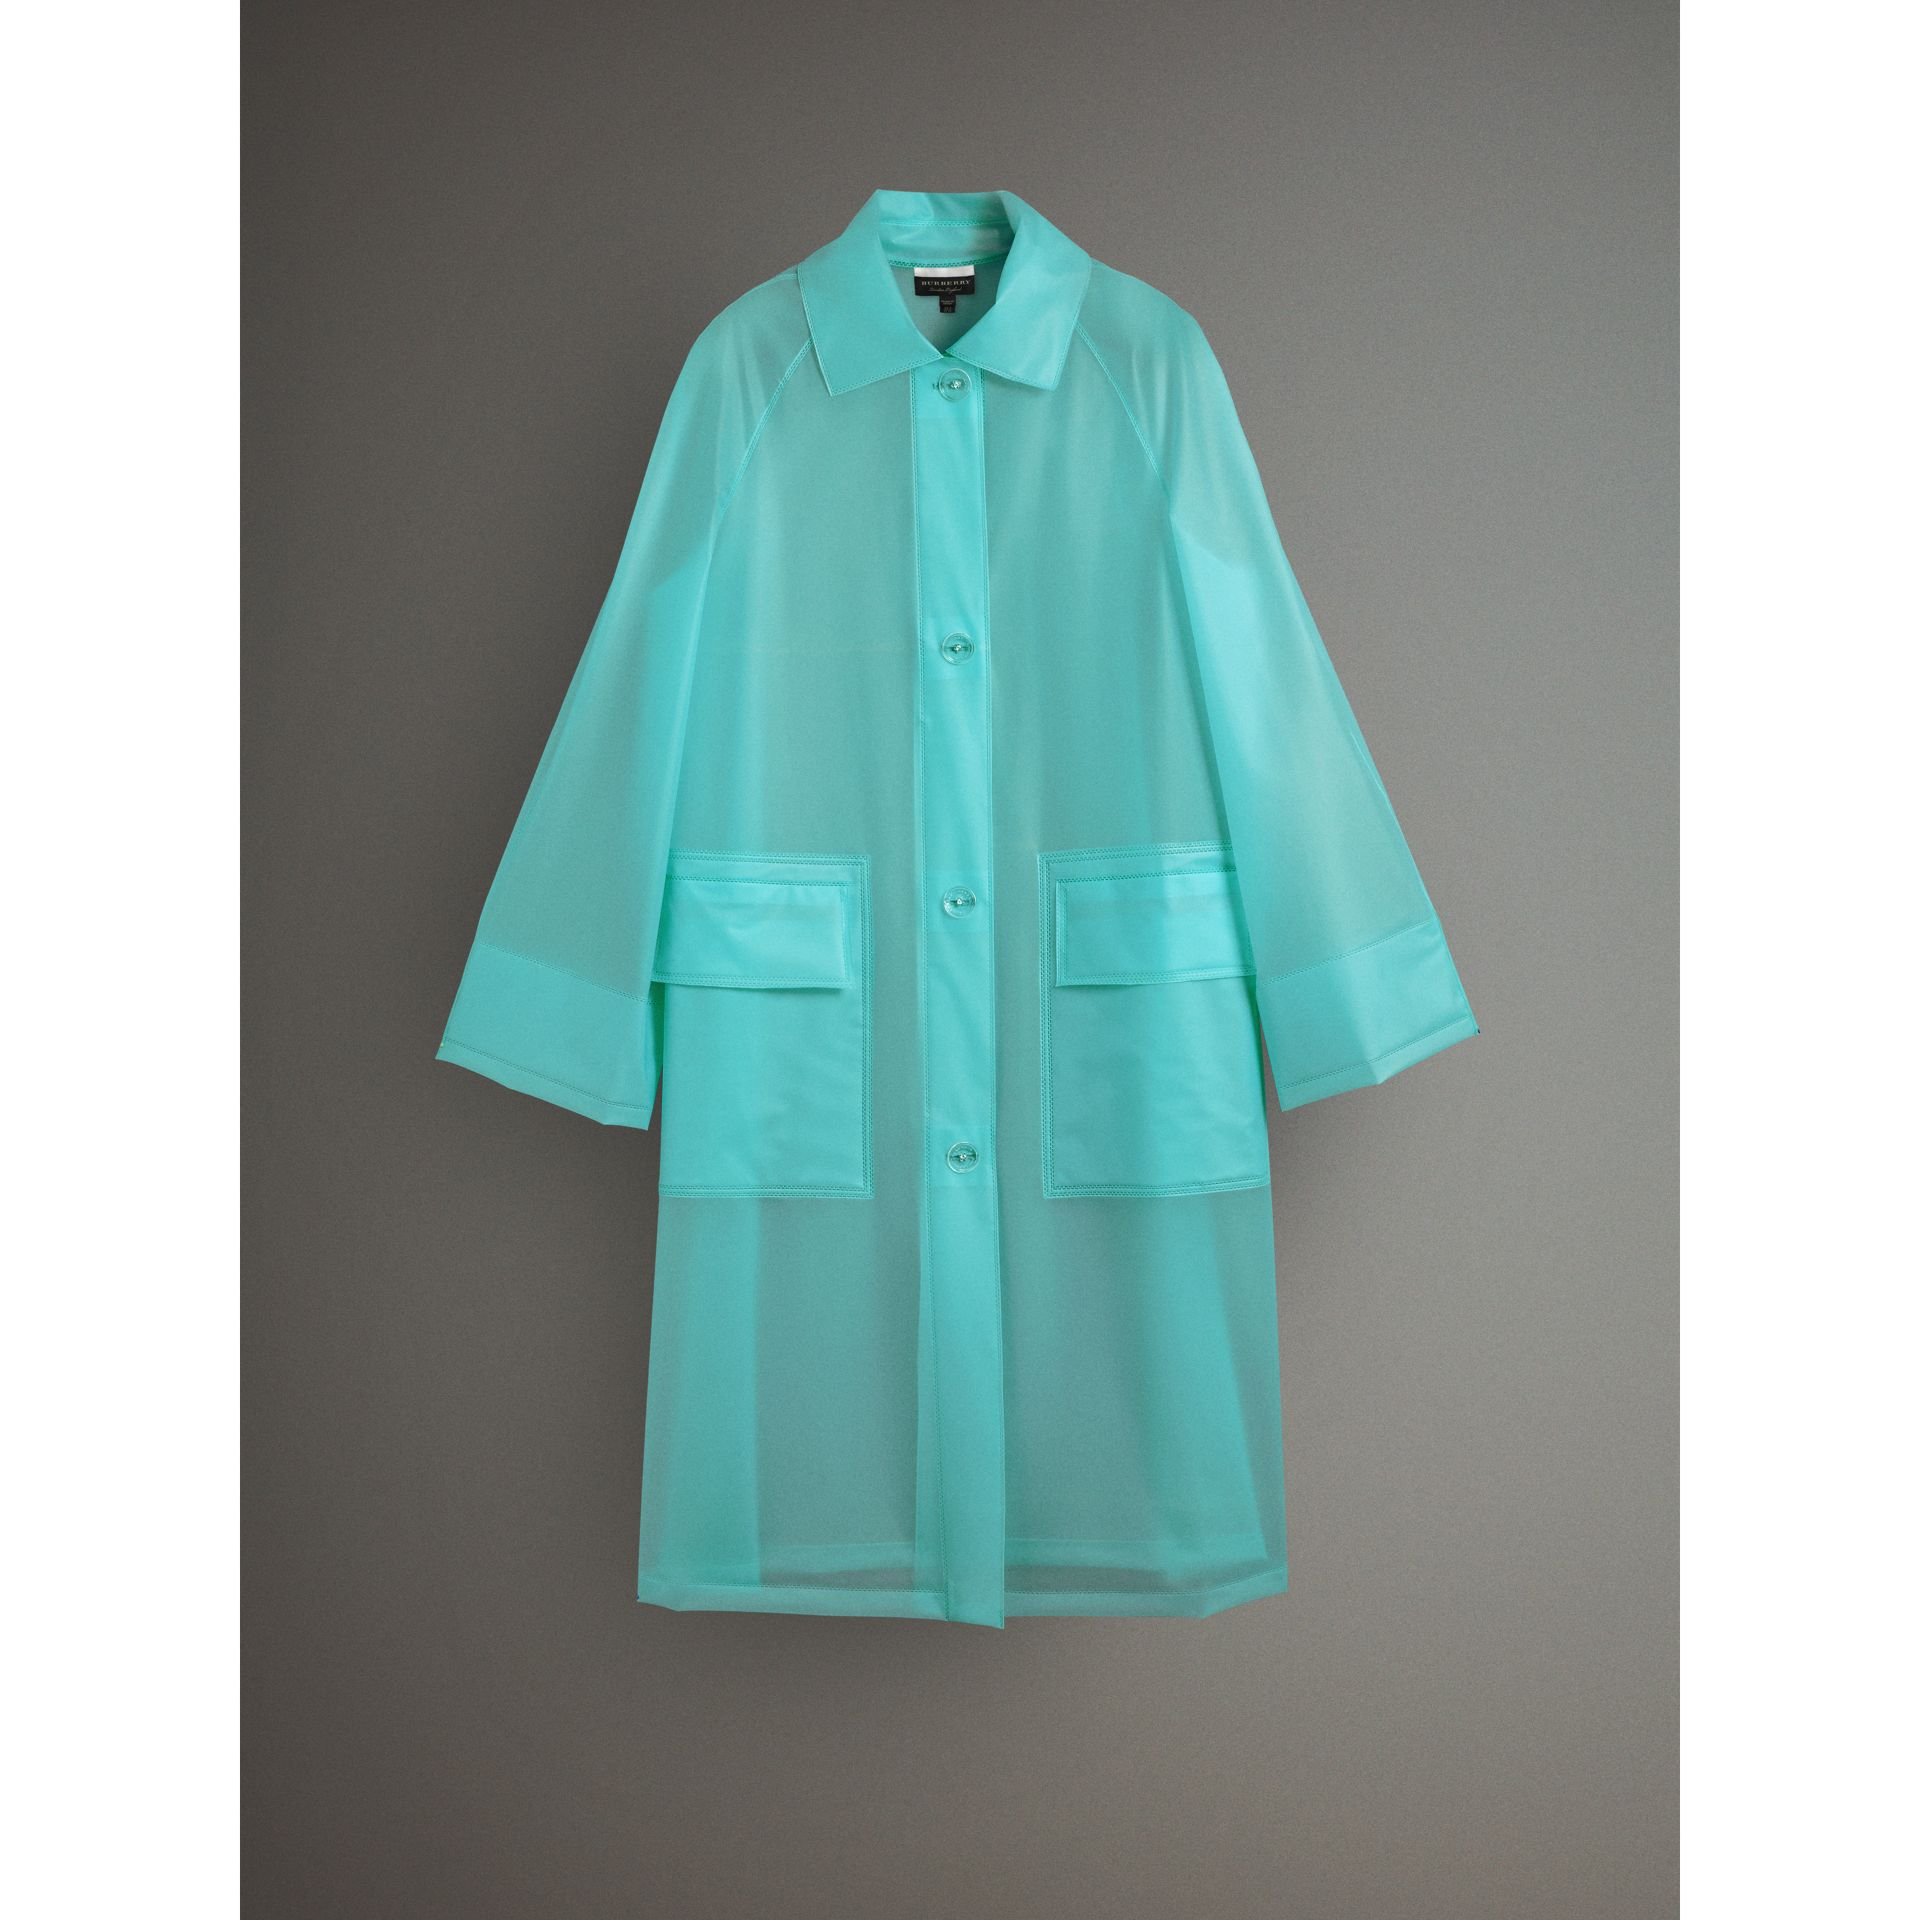 Soft-touch Plastic Car Coat in Turquoise - Women | Burberry Australia - gallery image 3